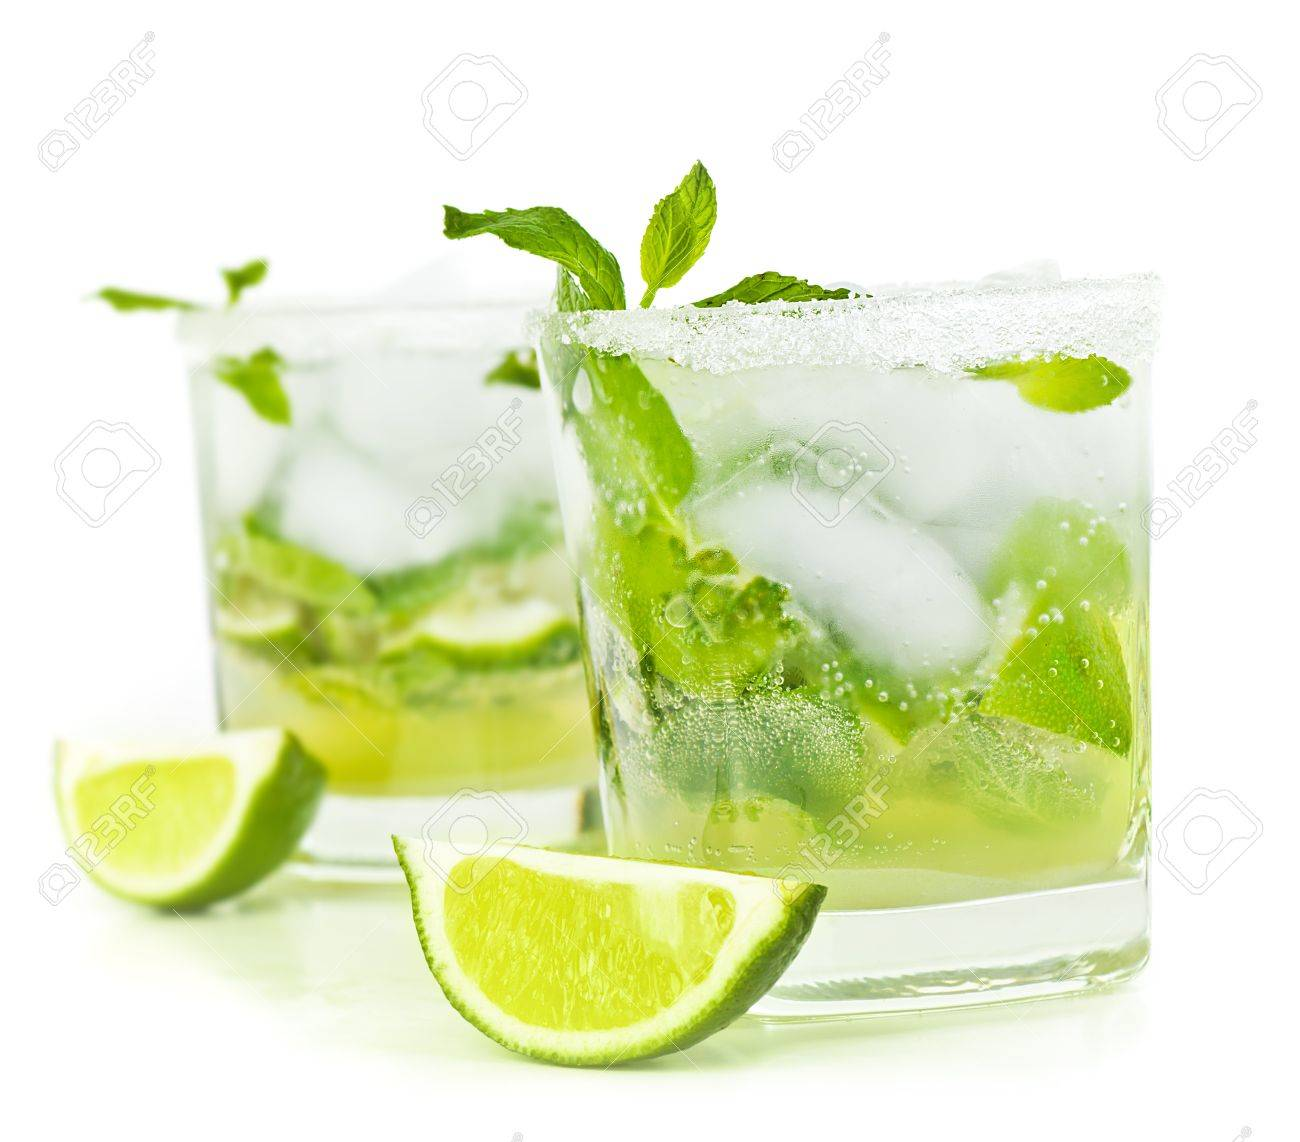 Cold mojito drink, glass of alcohol isolated over white background, fresh mint and lime fruit slice, food still life, party and holidays celebration Stock Photo - 13284858